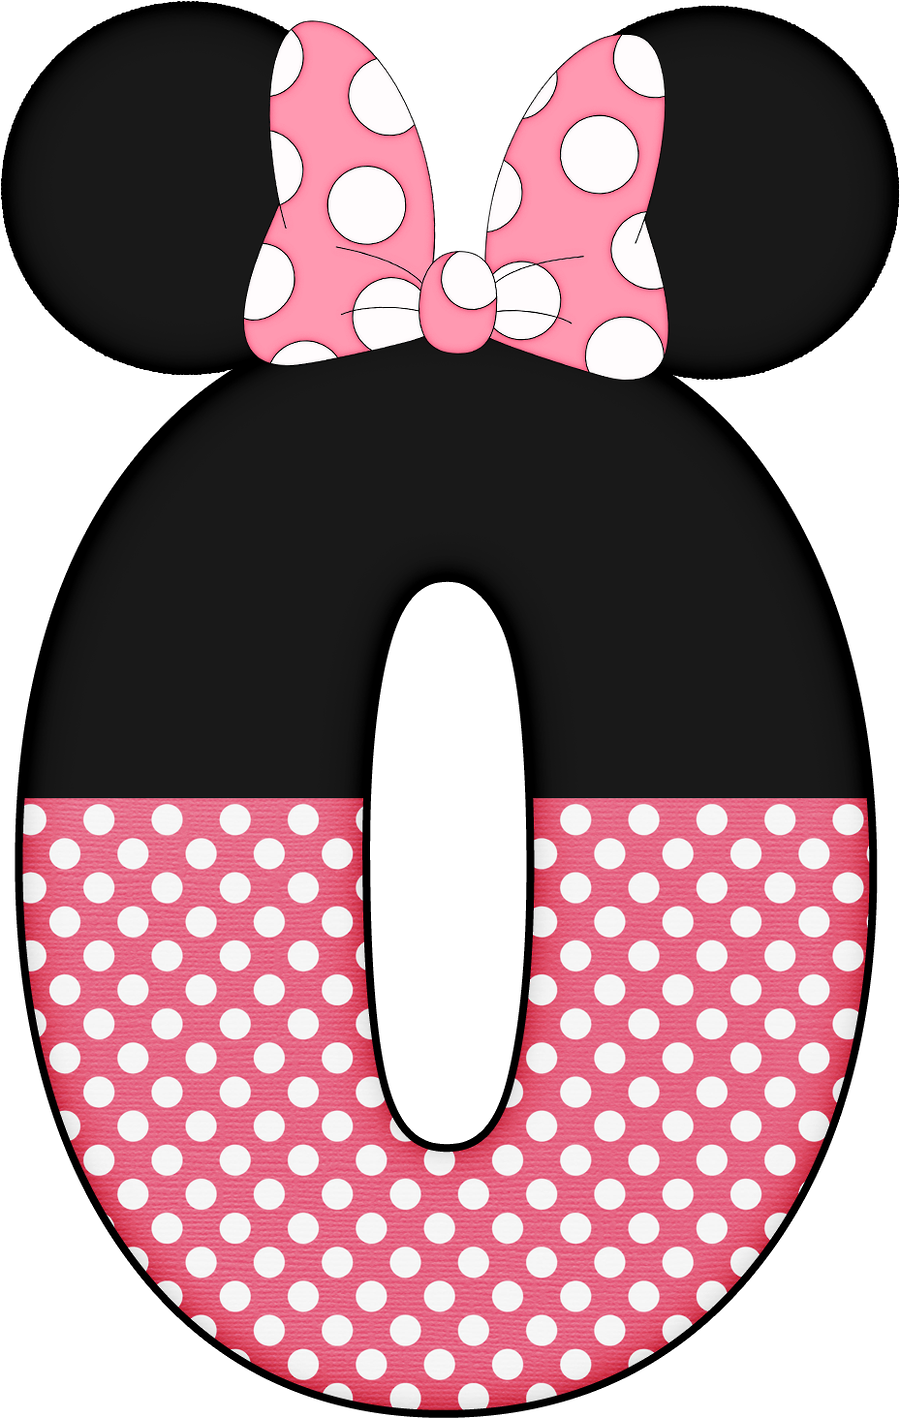 Mickey e si ratinha. Number 1 clipart minnie mouse